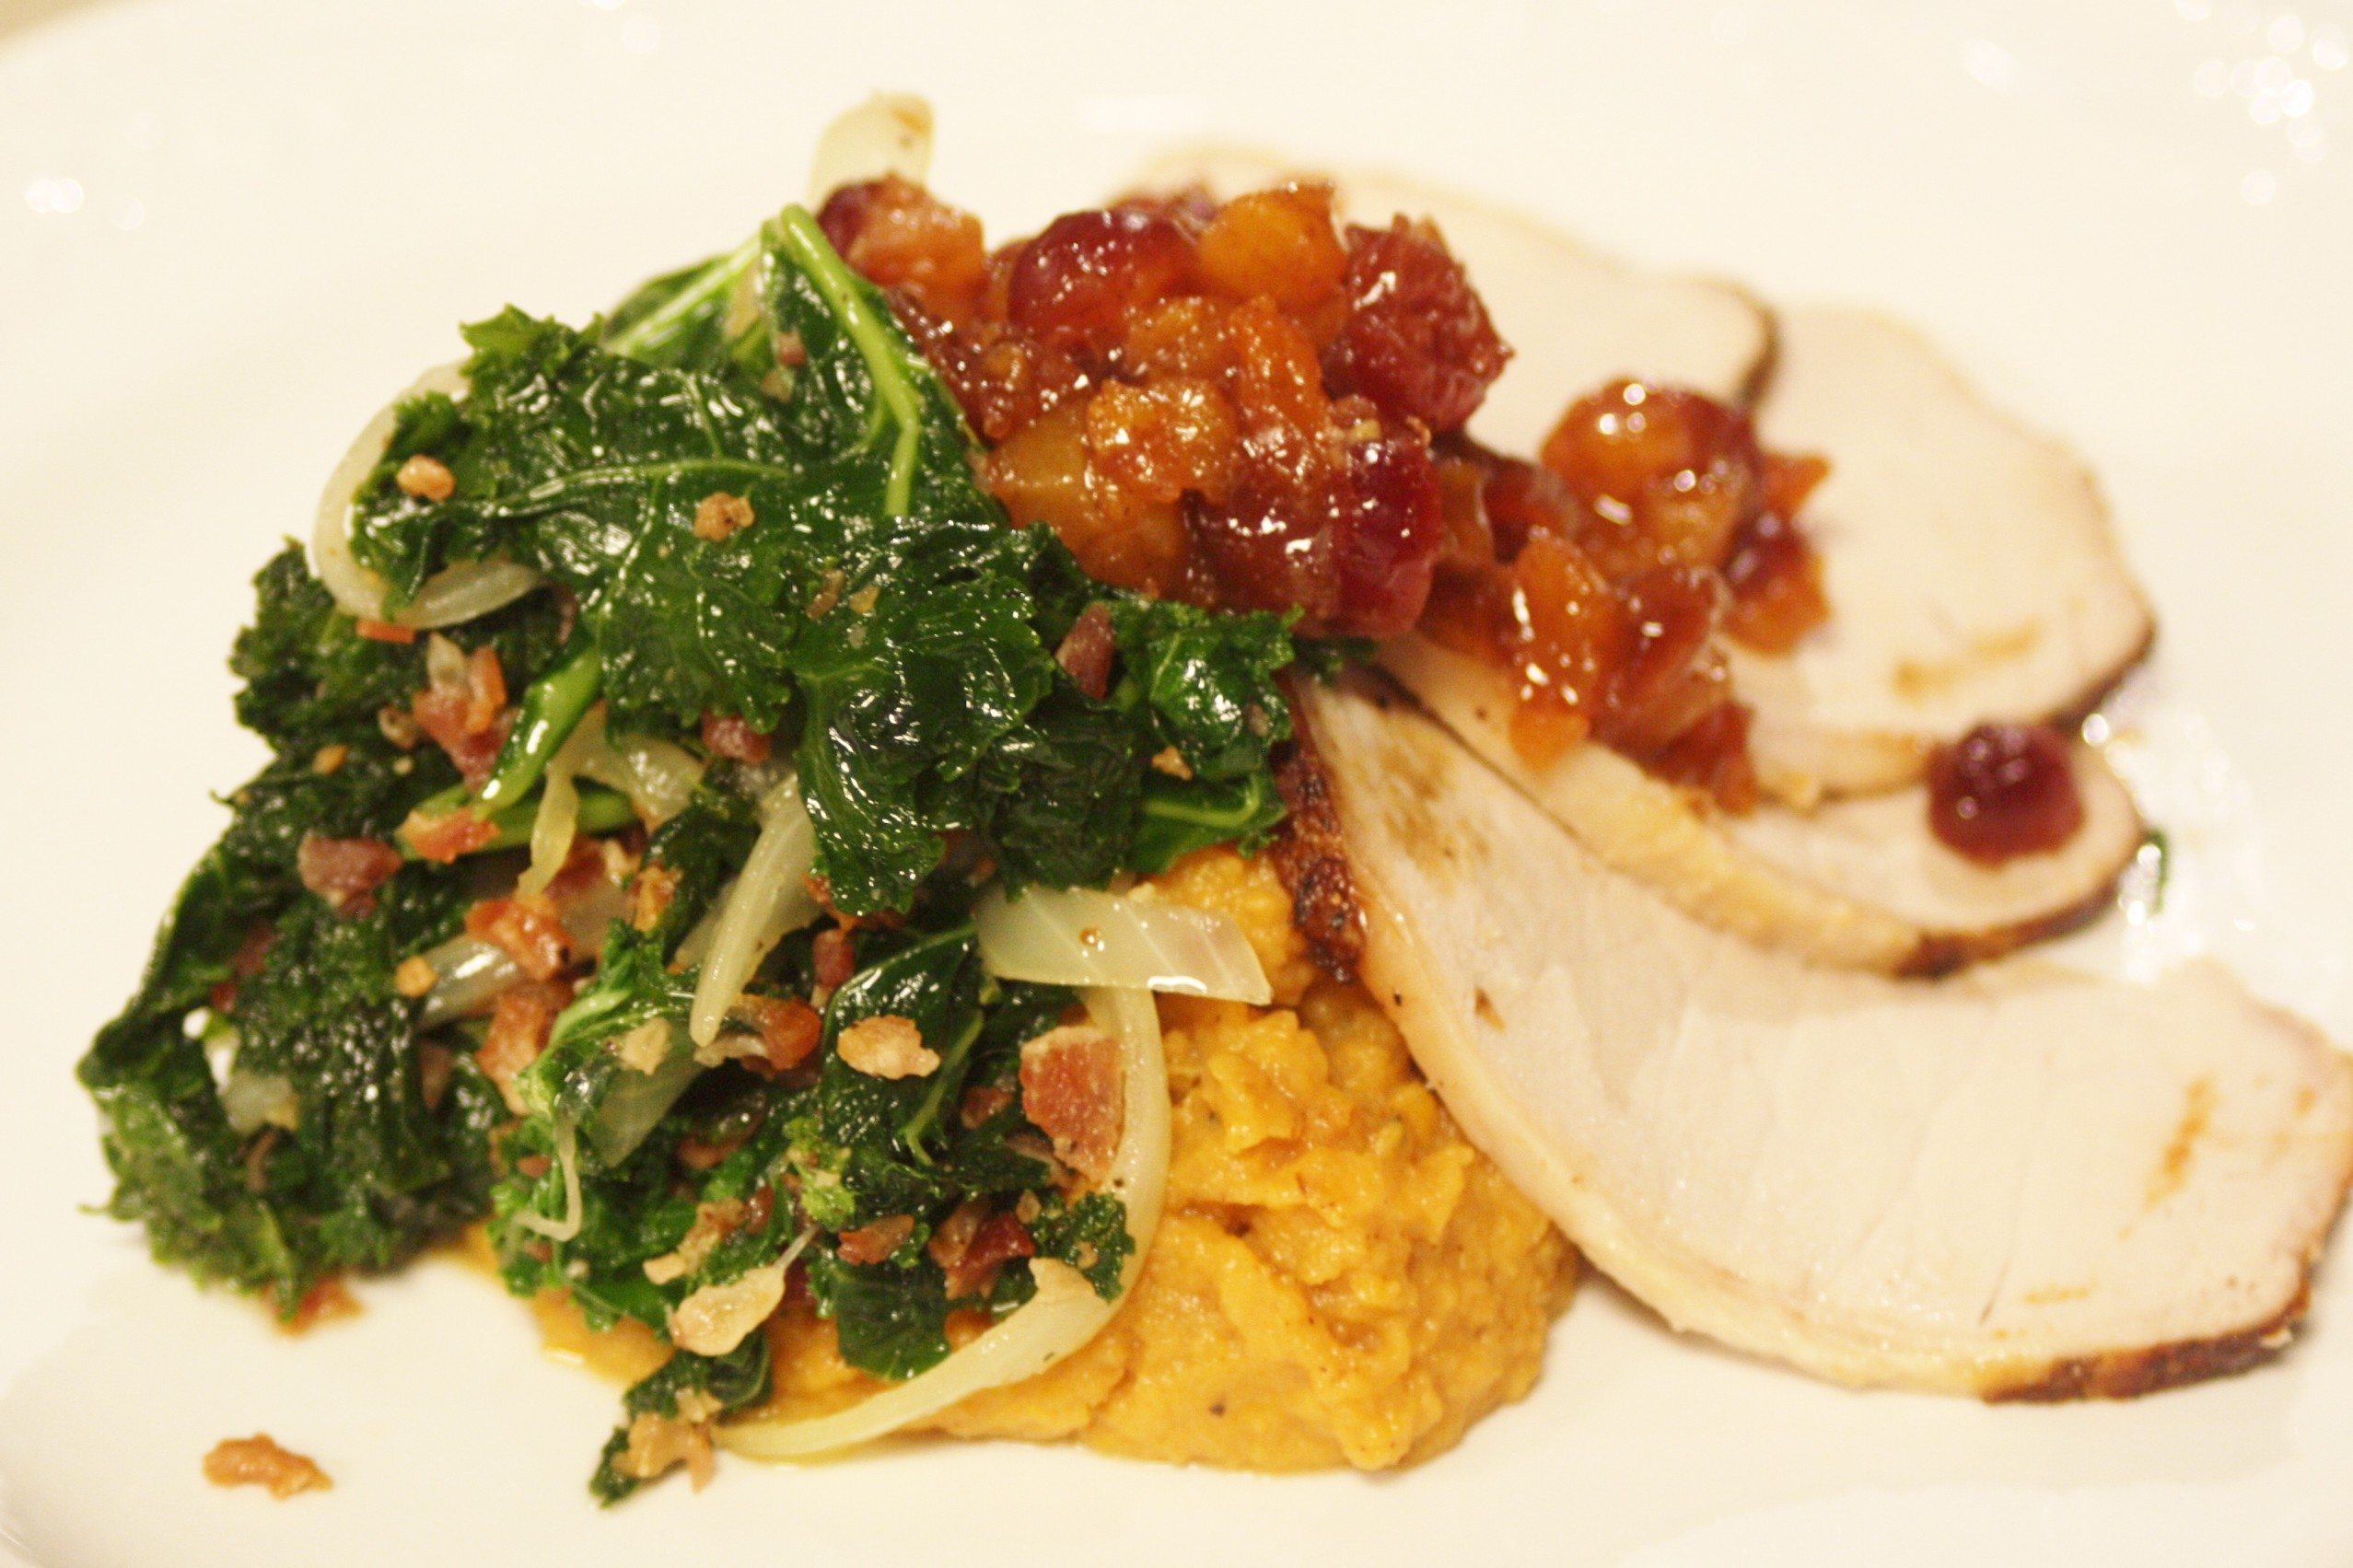 Roasted Loin of Pork with Sweet Potato Mash, Wilted Kale, and Maple Cranberry & Apple Chutney